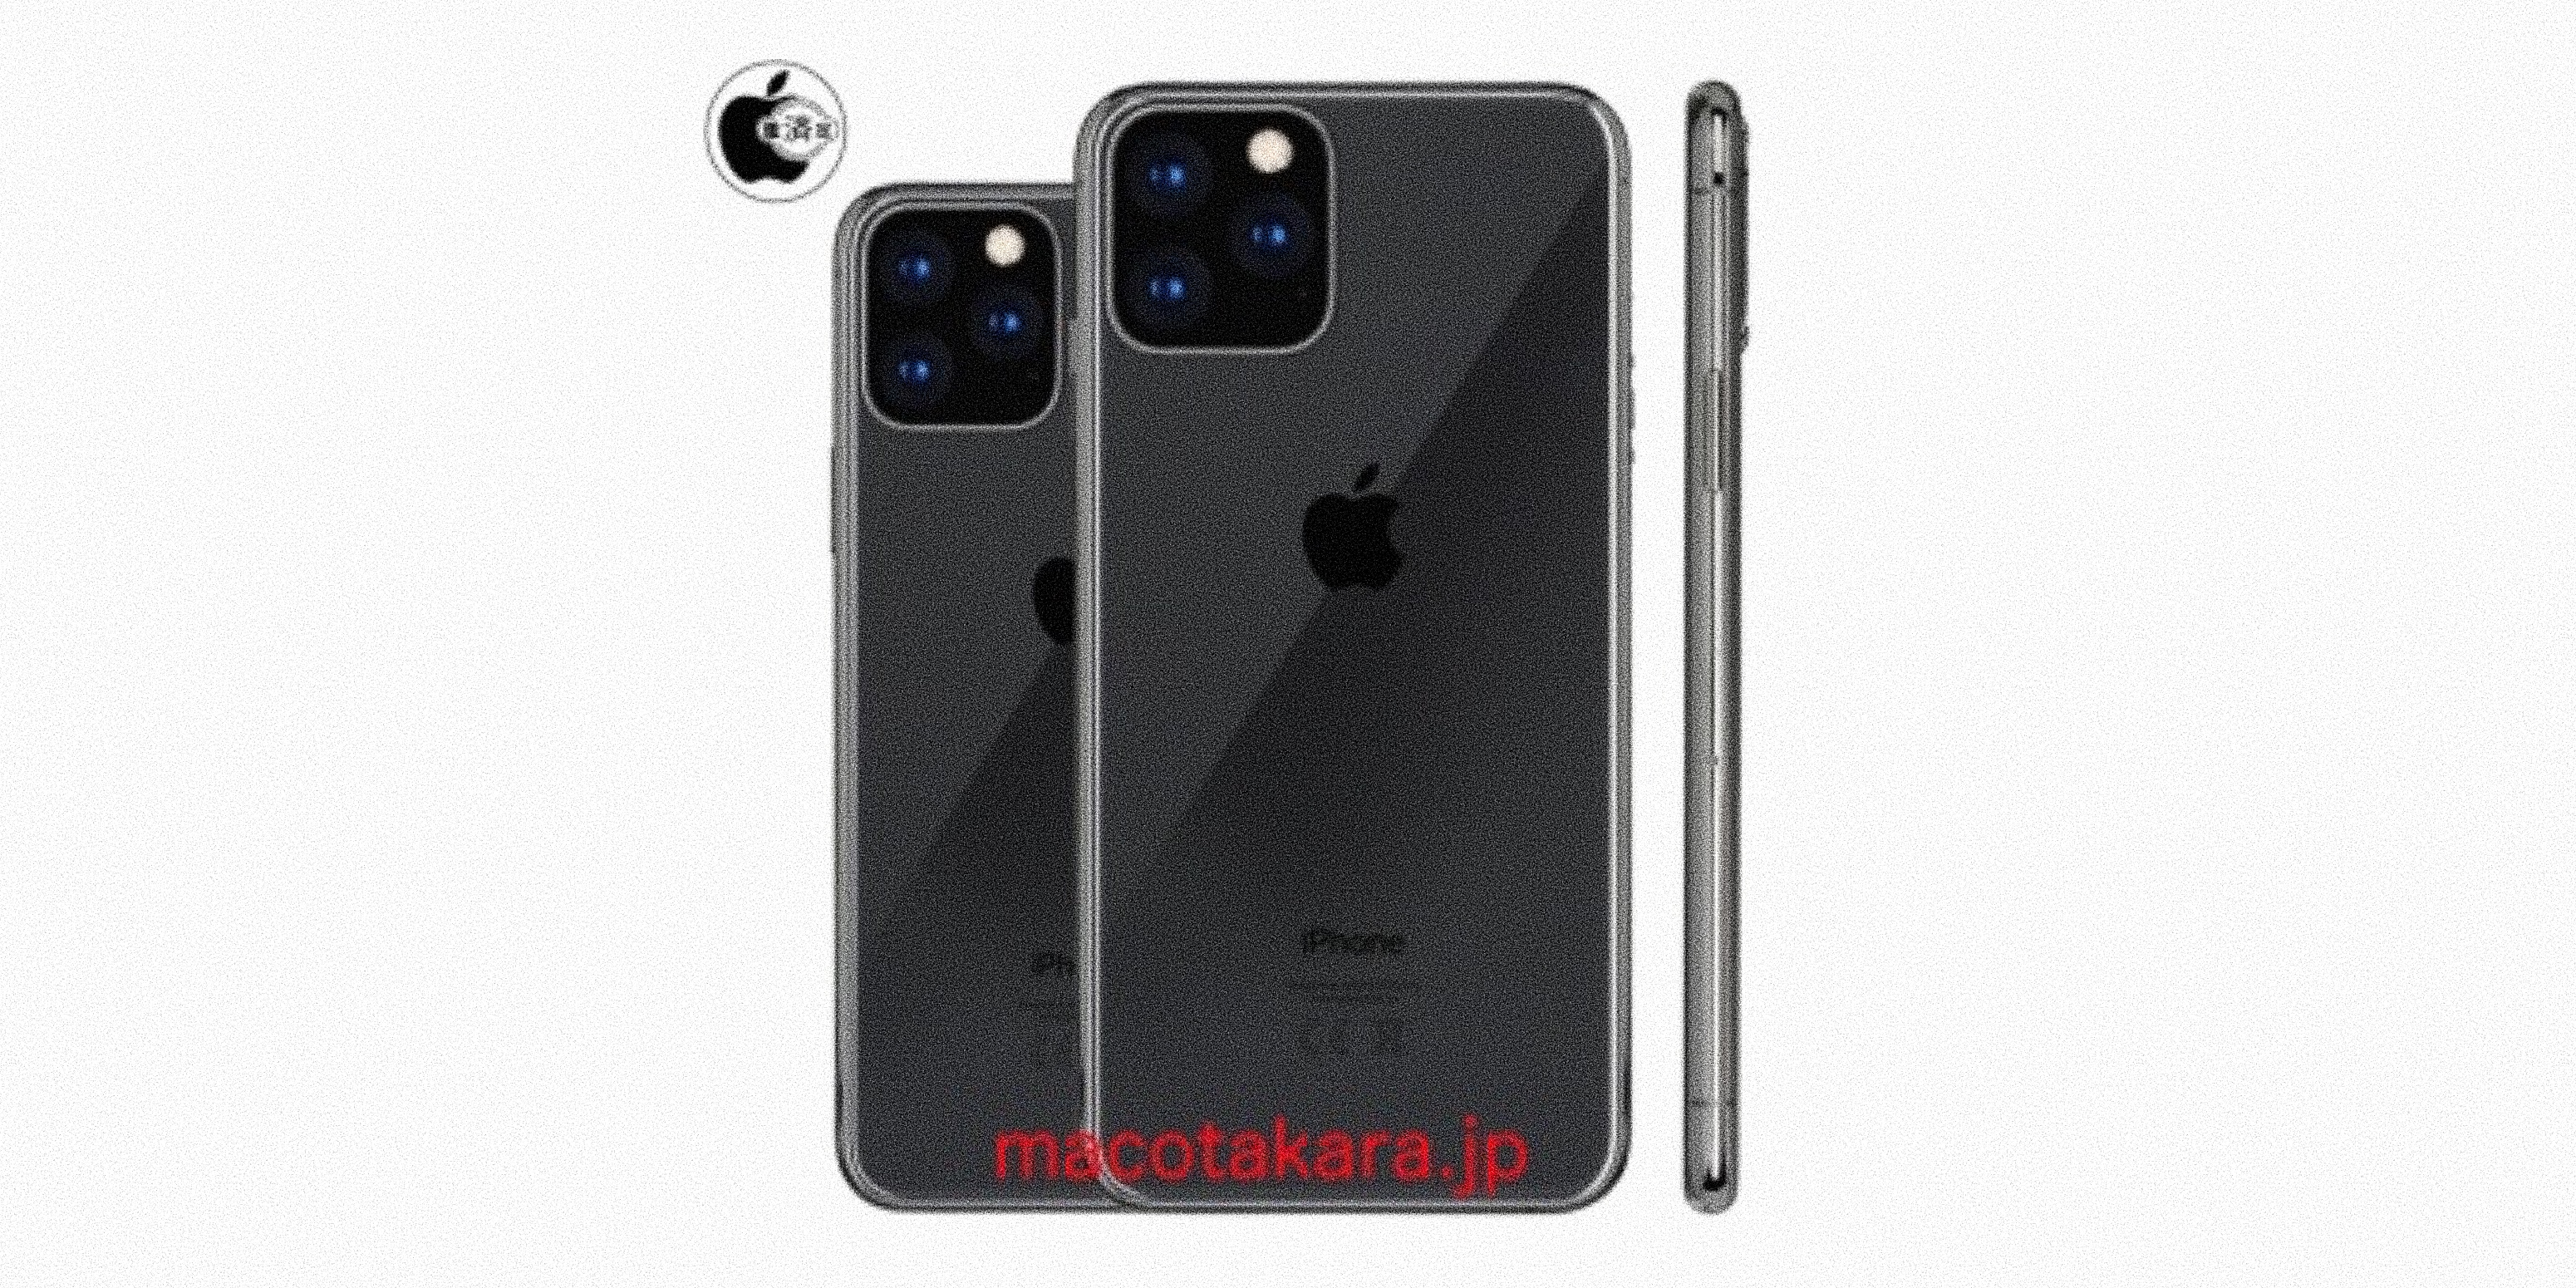 New report claims that the triple-camera iPhones in 2019 ...